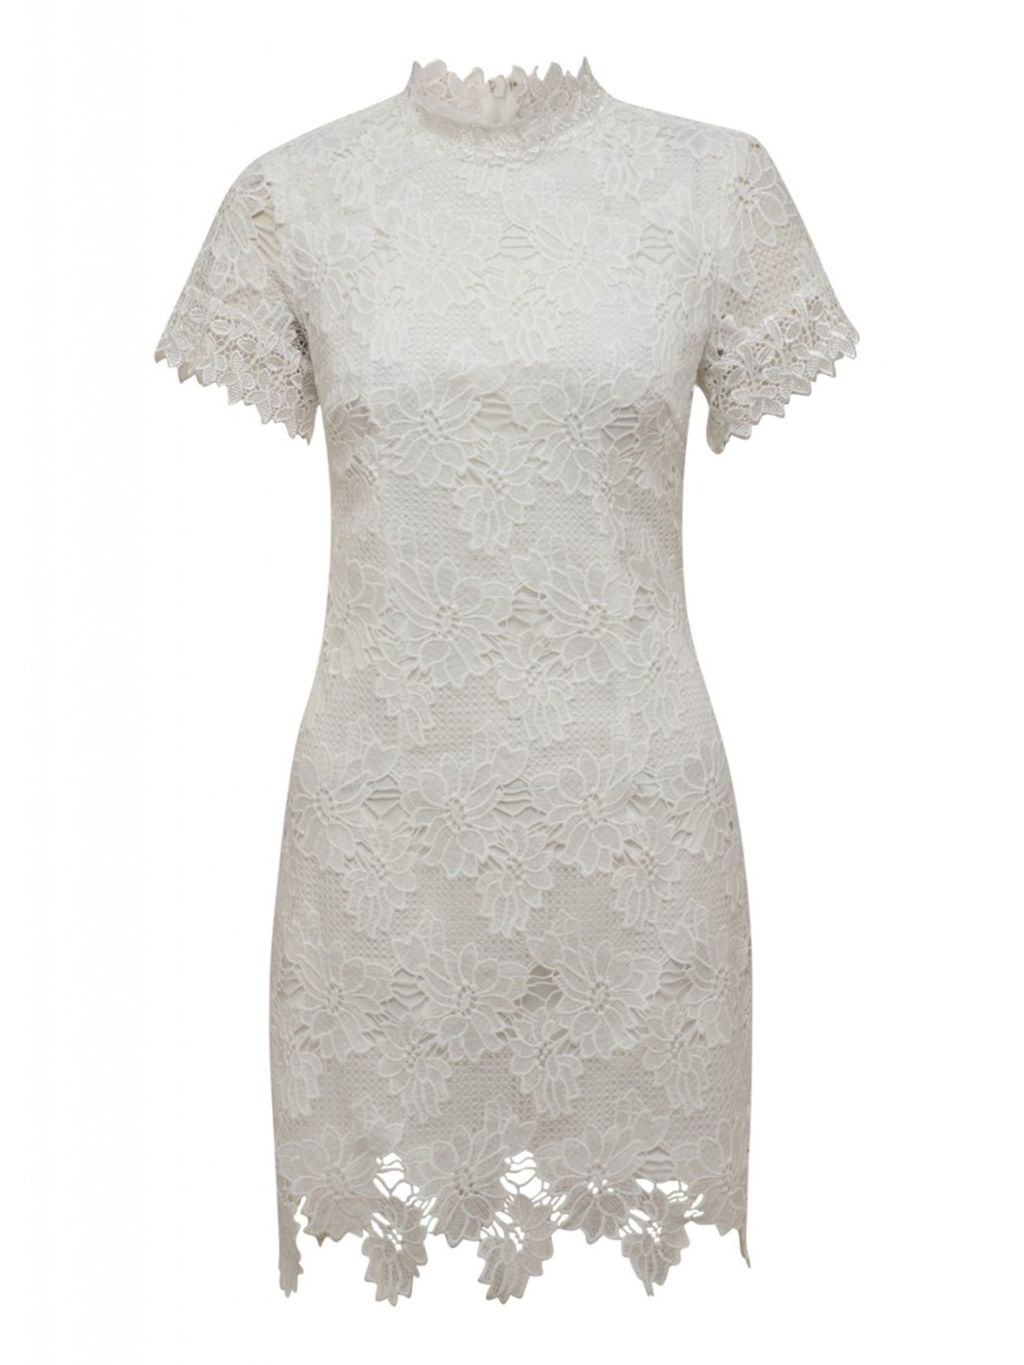 Short Sleeve Crochet Dress, Cream - style: shift; length: mid thigh; fit: tight; neckline: high neck; predominant colour: ivory/cream; occasions: evening; fibres: polyester/polyamide - 100%; sleeve length: short sleeve; sleeve style: standard; texture group: lace; pattern type: fabric; pattern size: standard; pattern: patterned/print; embellishment: lace; season: s/s 2016; wardrobe: event